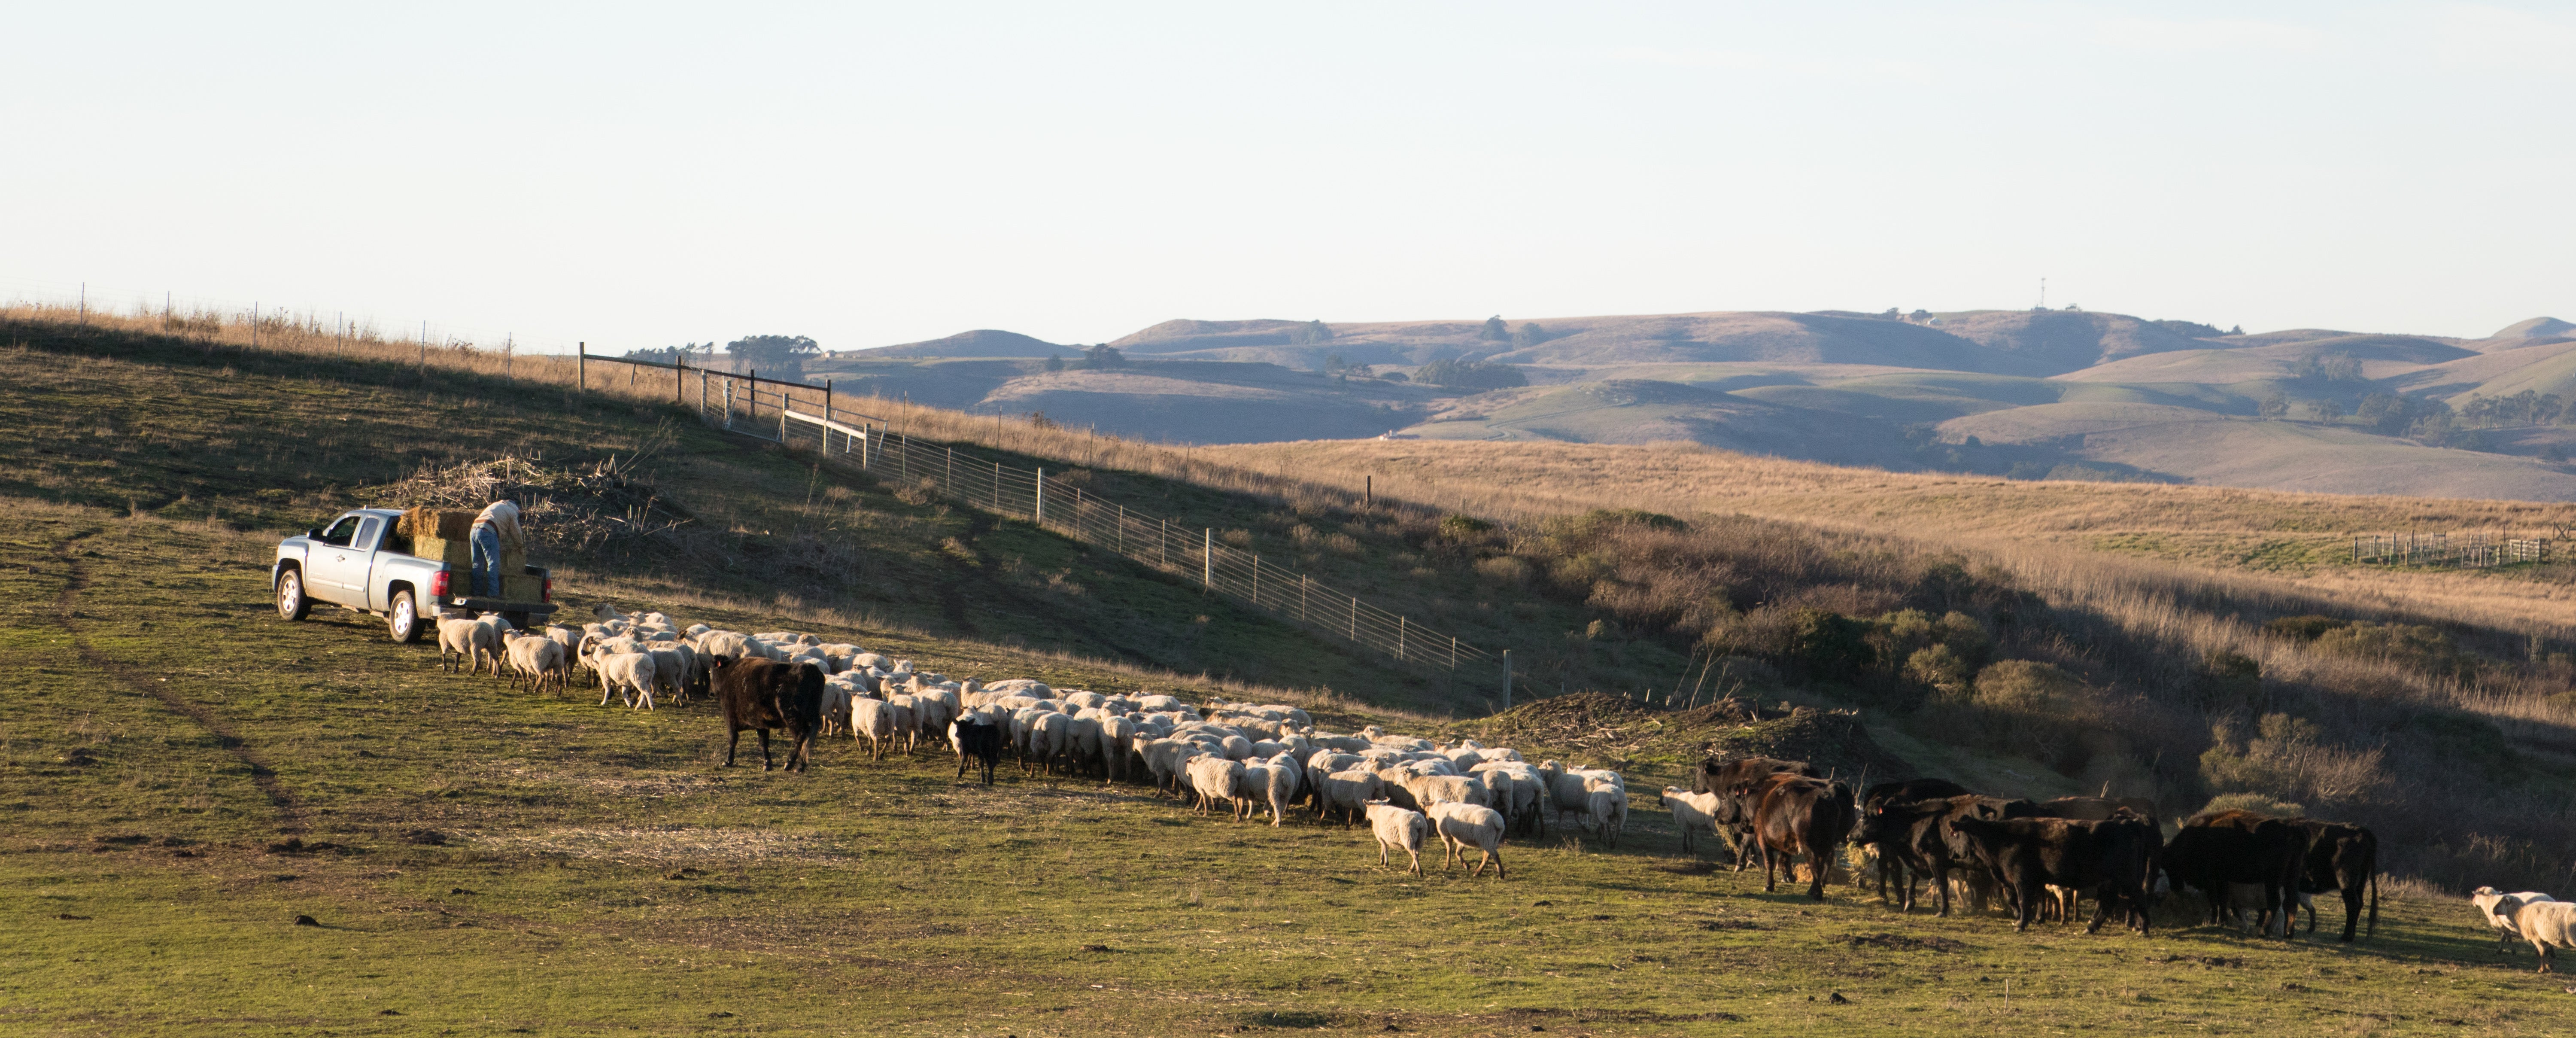 Herd of cattle and sheep behind truck, being fed bales of hay by farmer inside